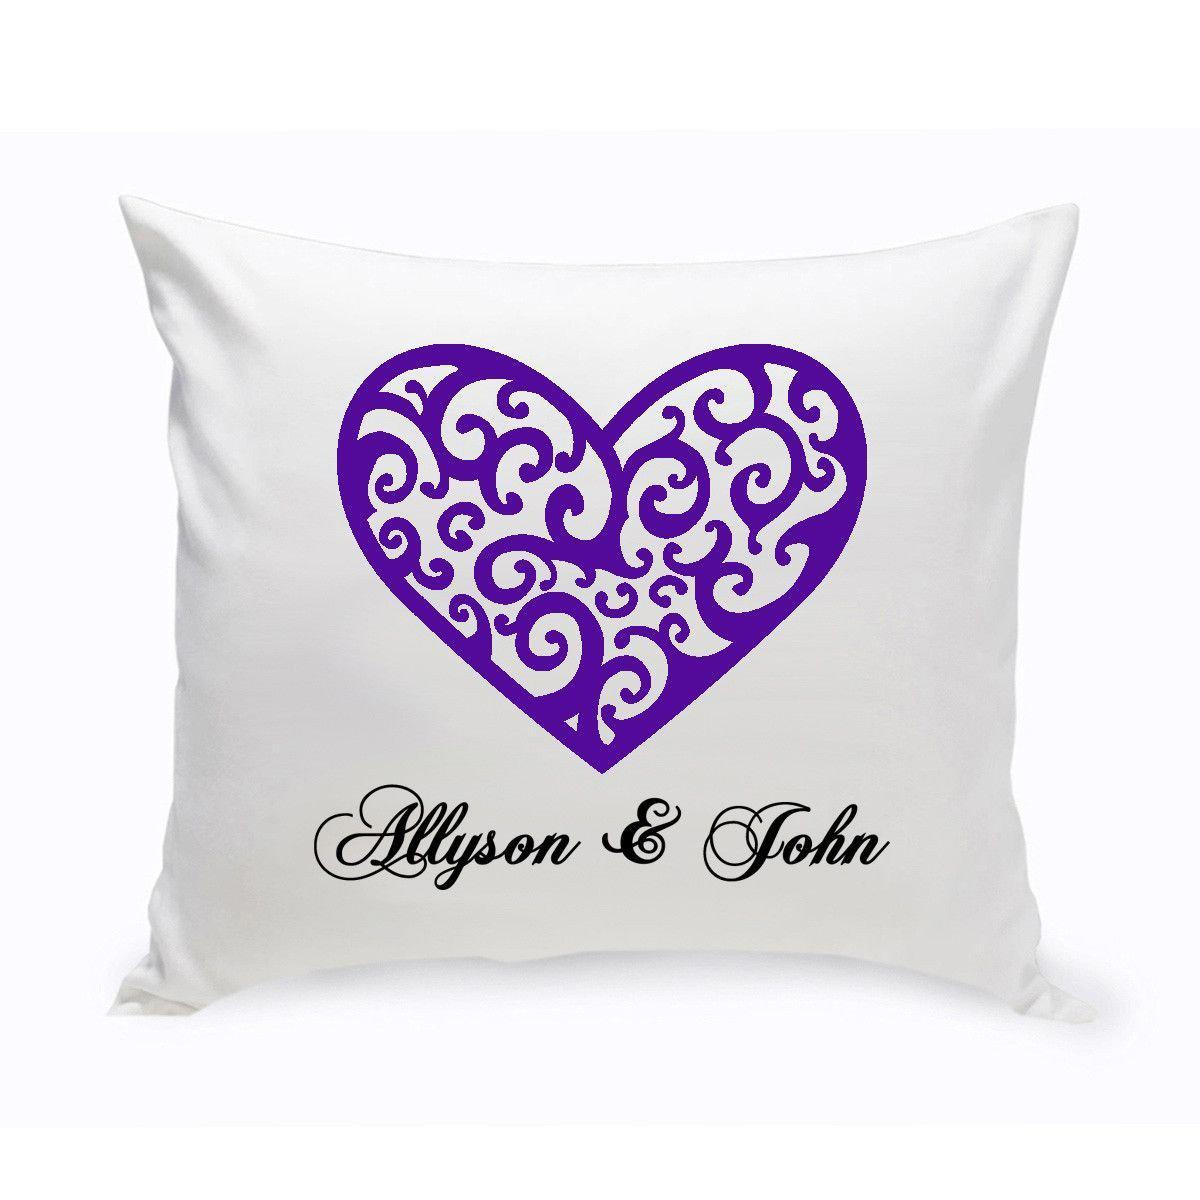 Personalized Throw Pillows - Personalized Couples Unity Vintage Heart